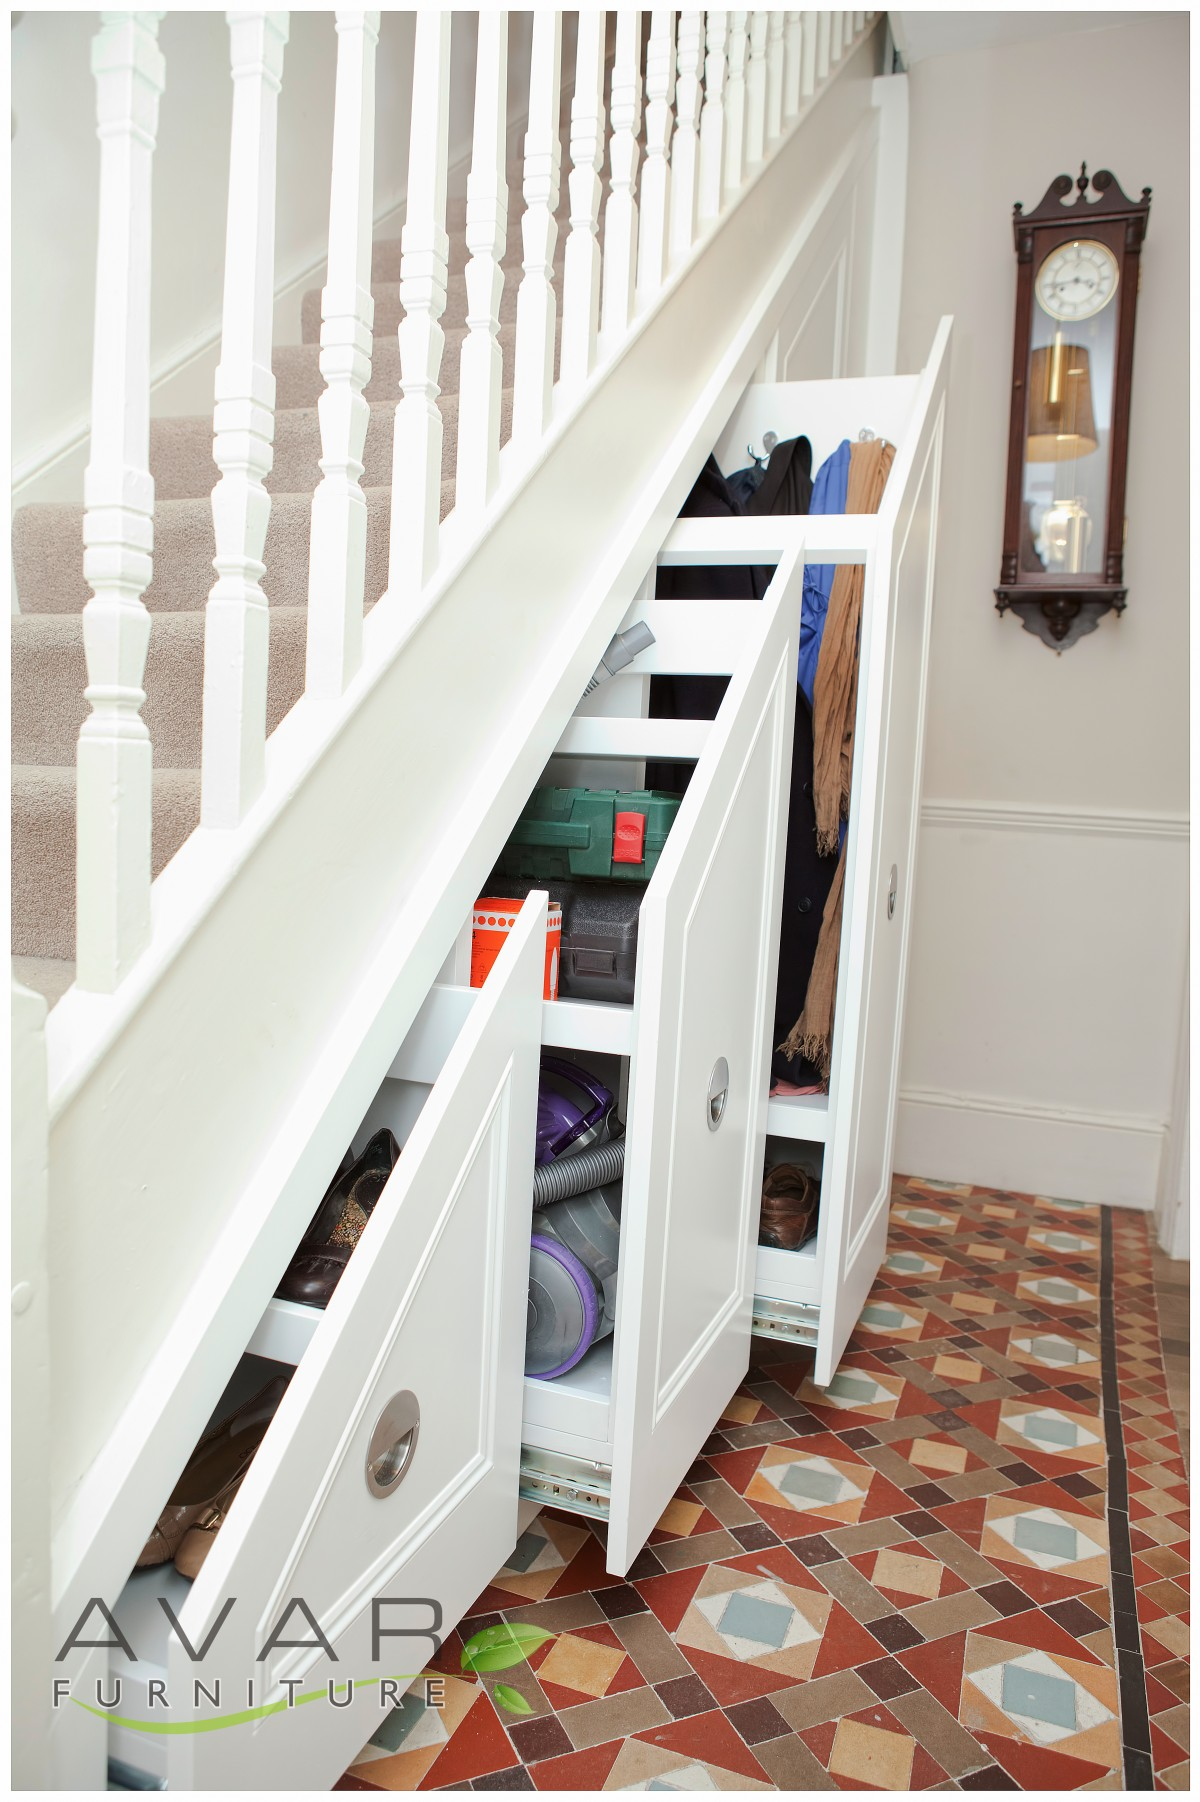 Under Stairs Drawers staircase storage. modern storage ideas for small spaces staircase